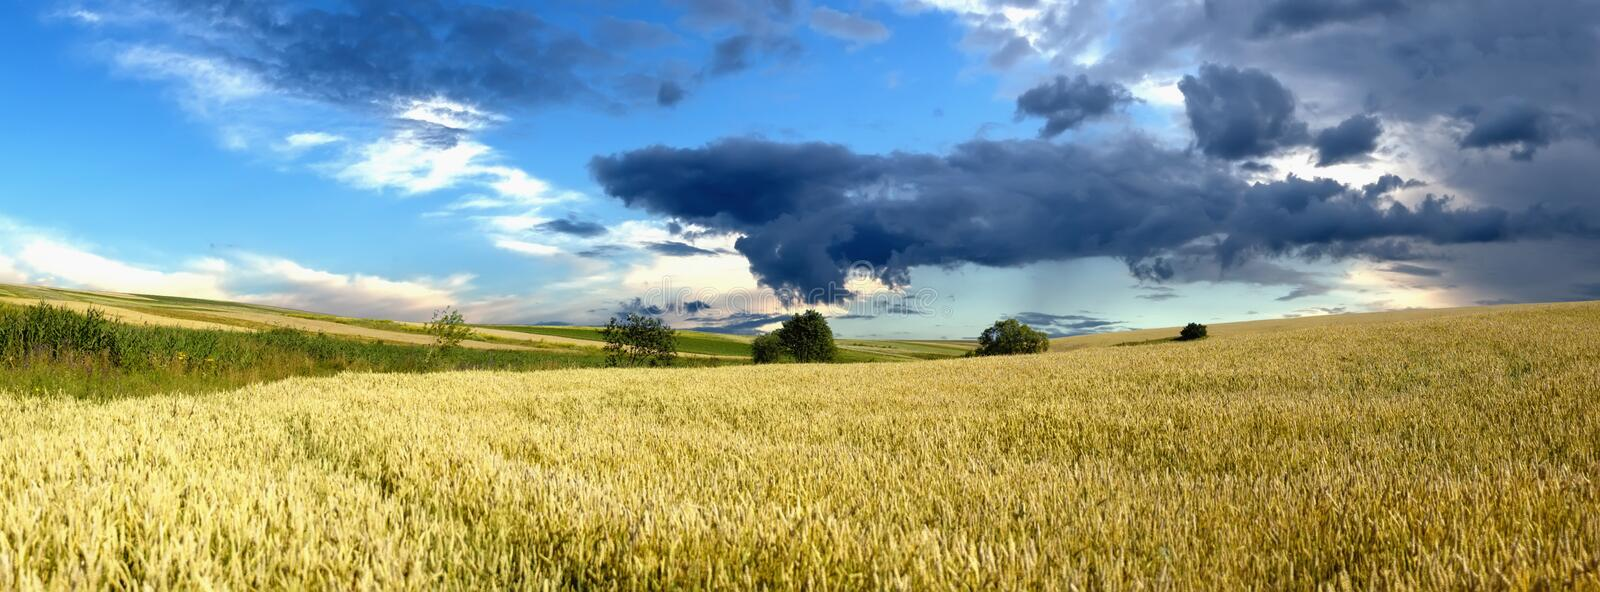 Country road in wheat field royalty free stock images